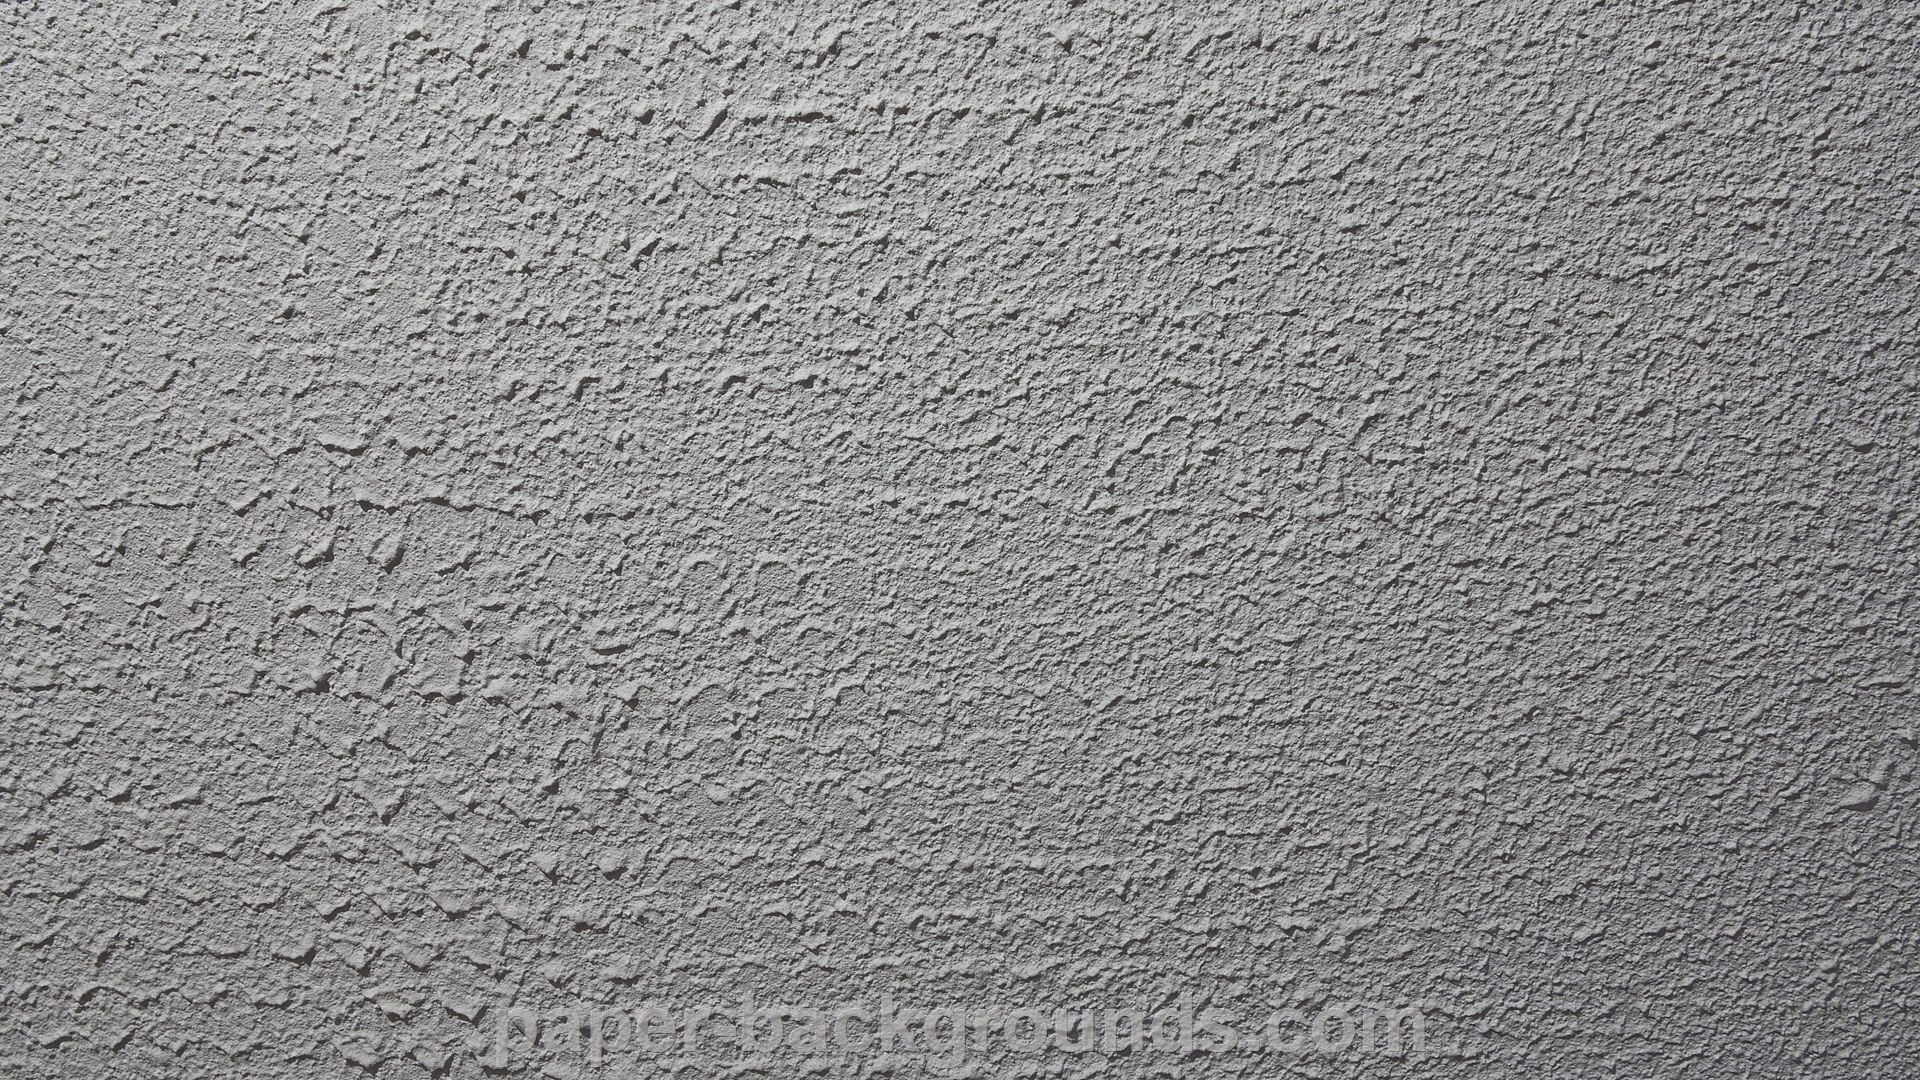 Gray Concrete Wall Texture HD